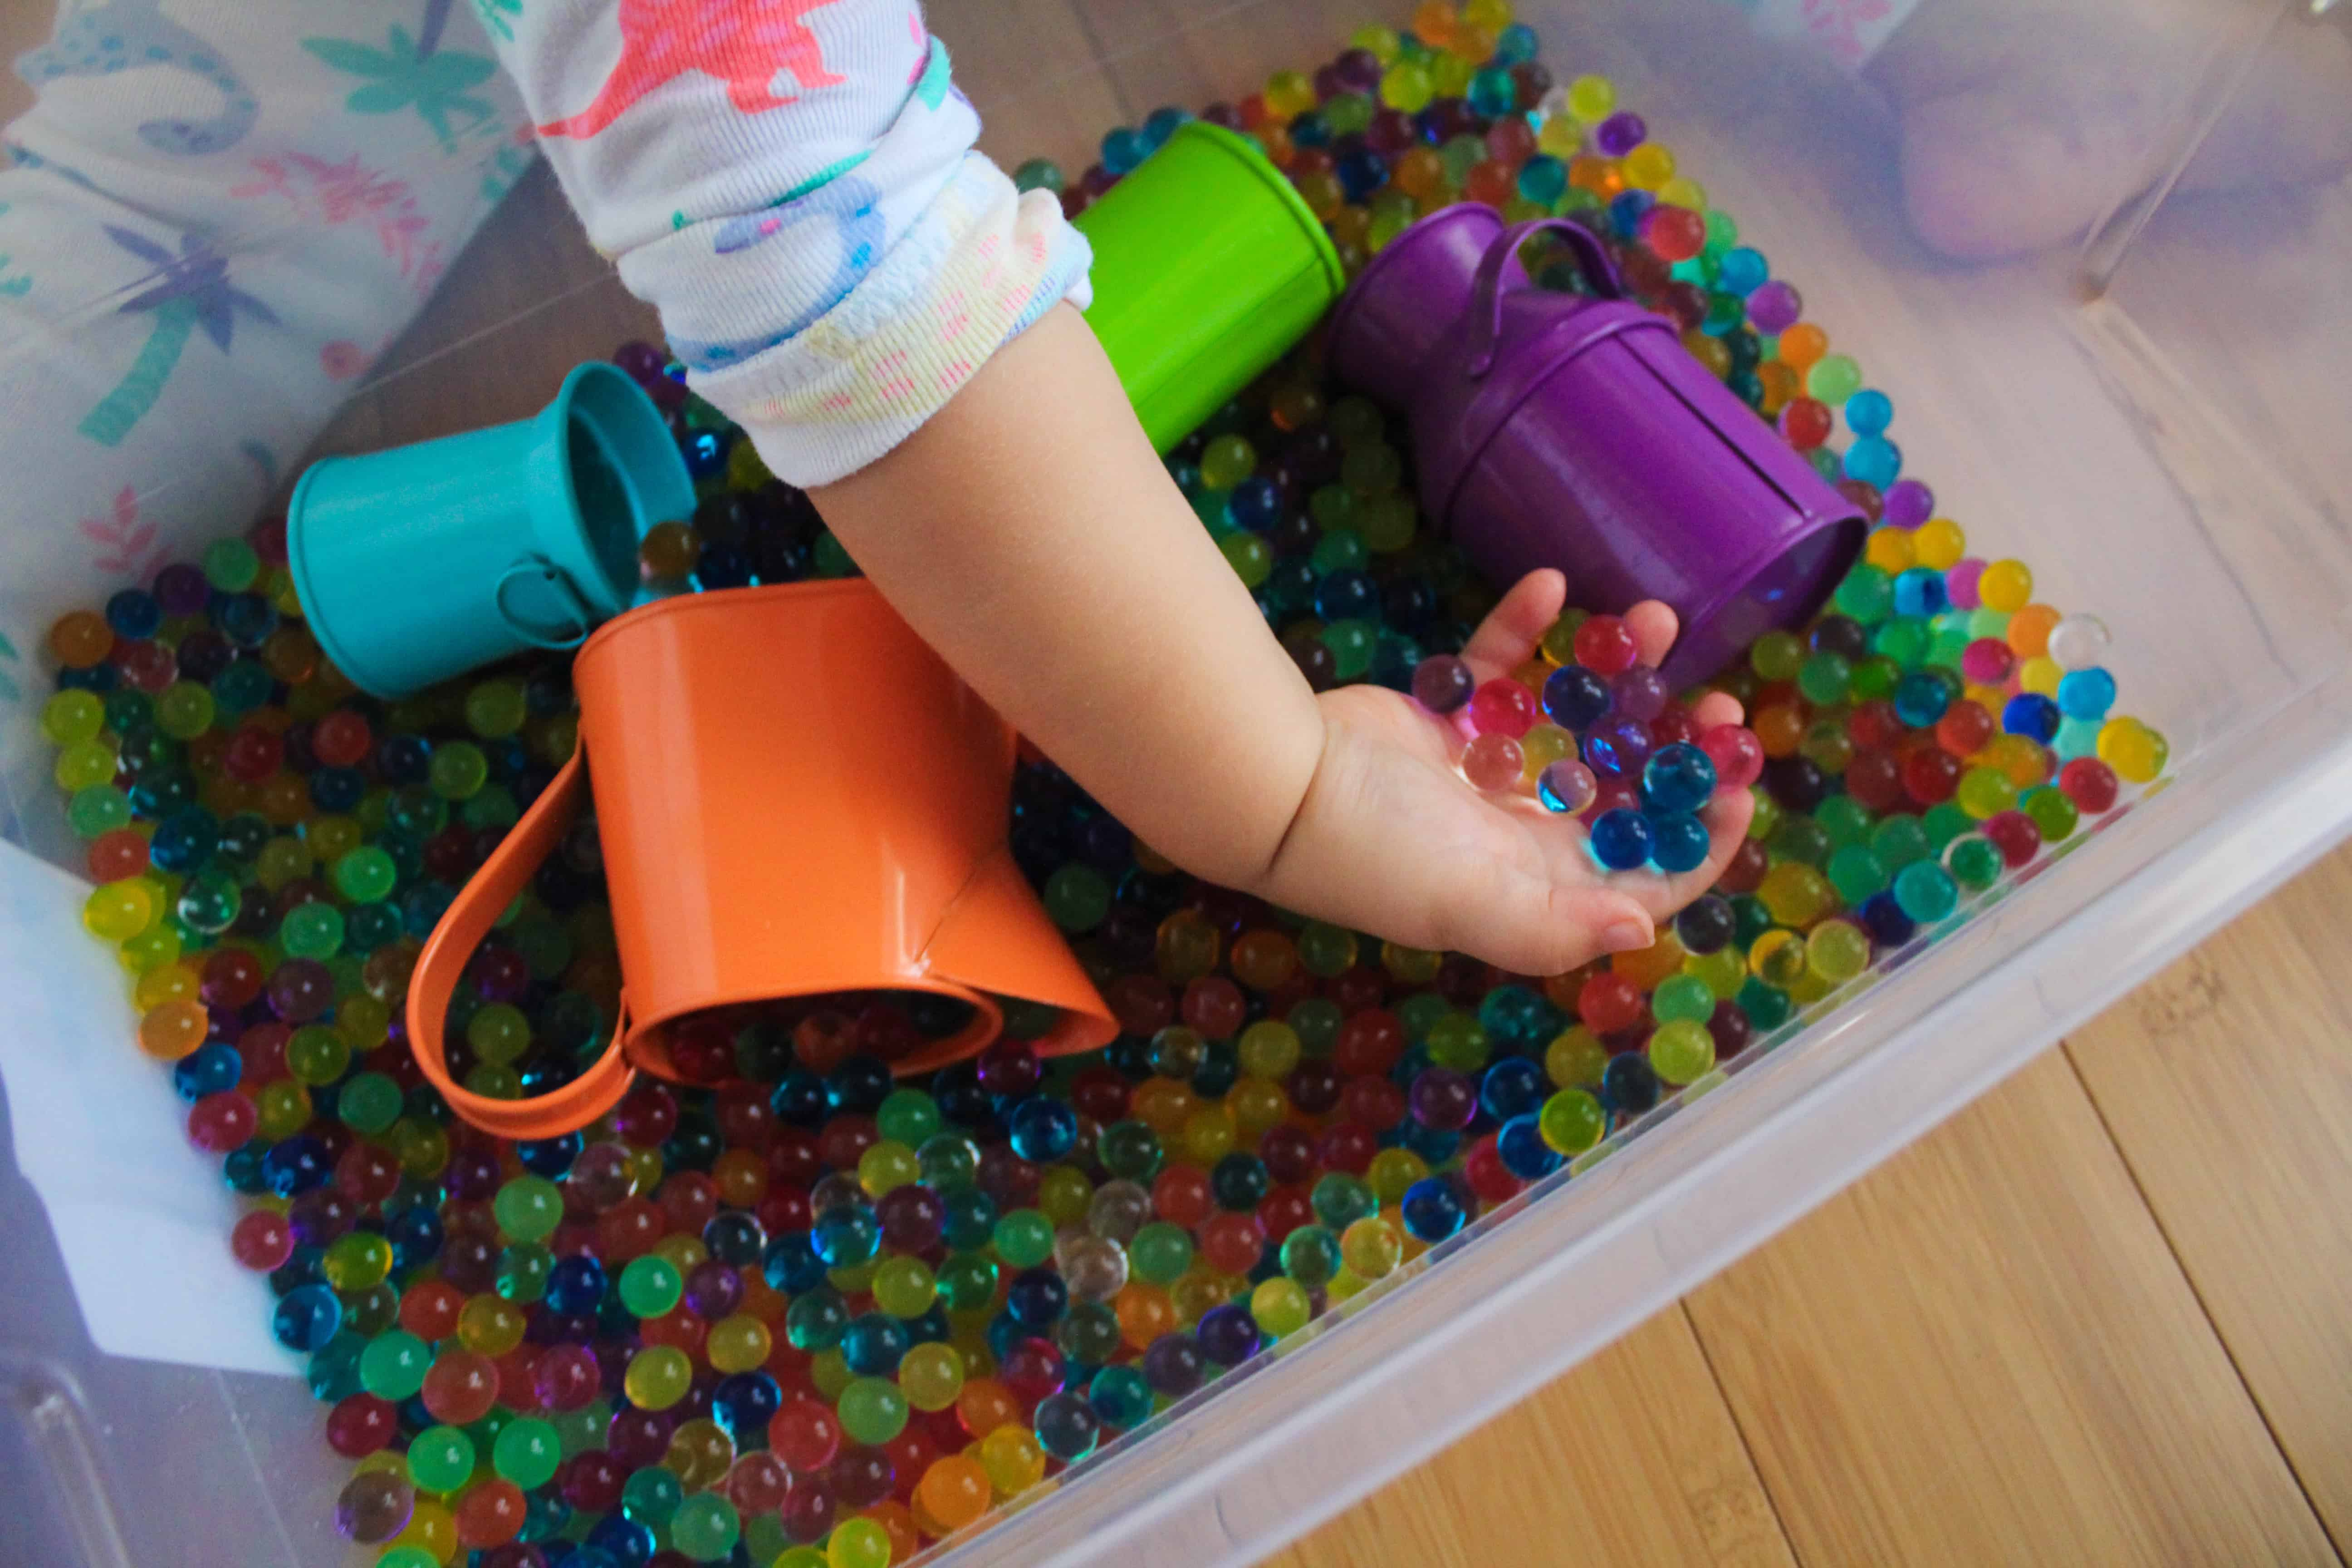 Water bead are a fun toddler activity and a great addition to a sensory box. Teach your child colors and counting through this fun play-based activity. Great indoor activity for toddlers and preschool aged children,